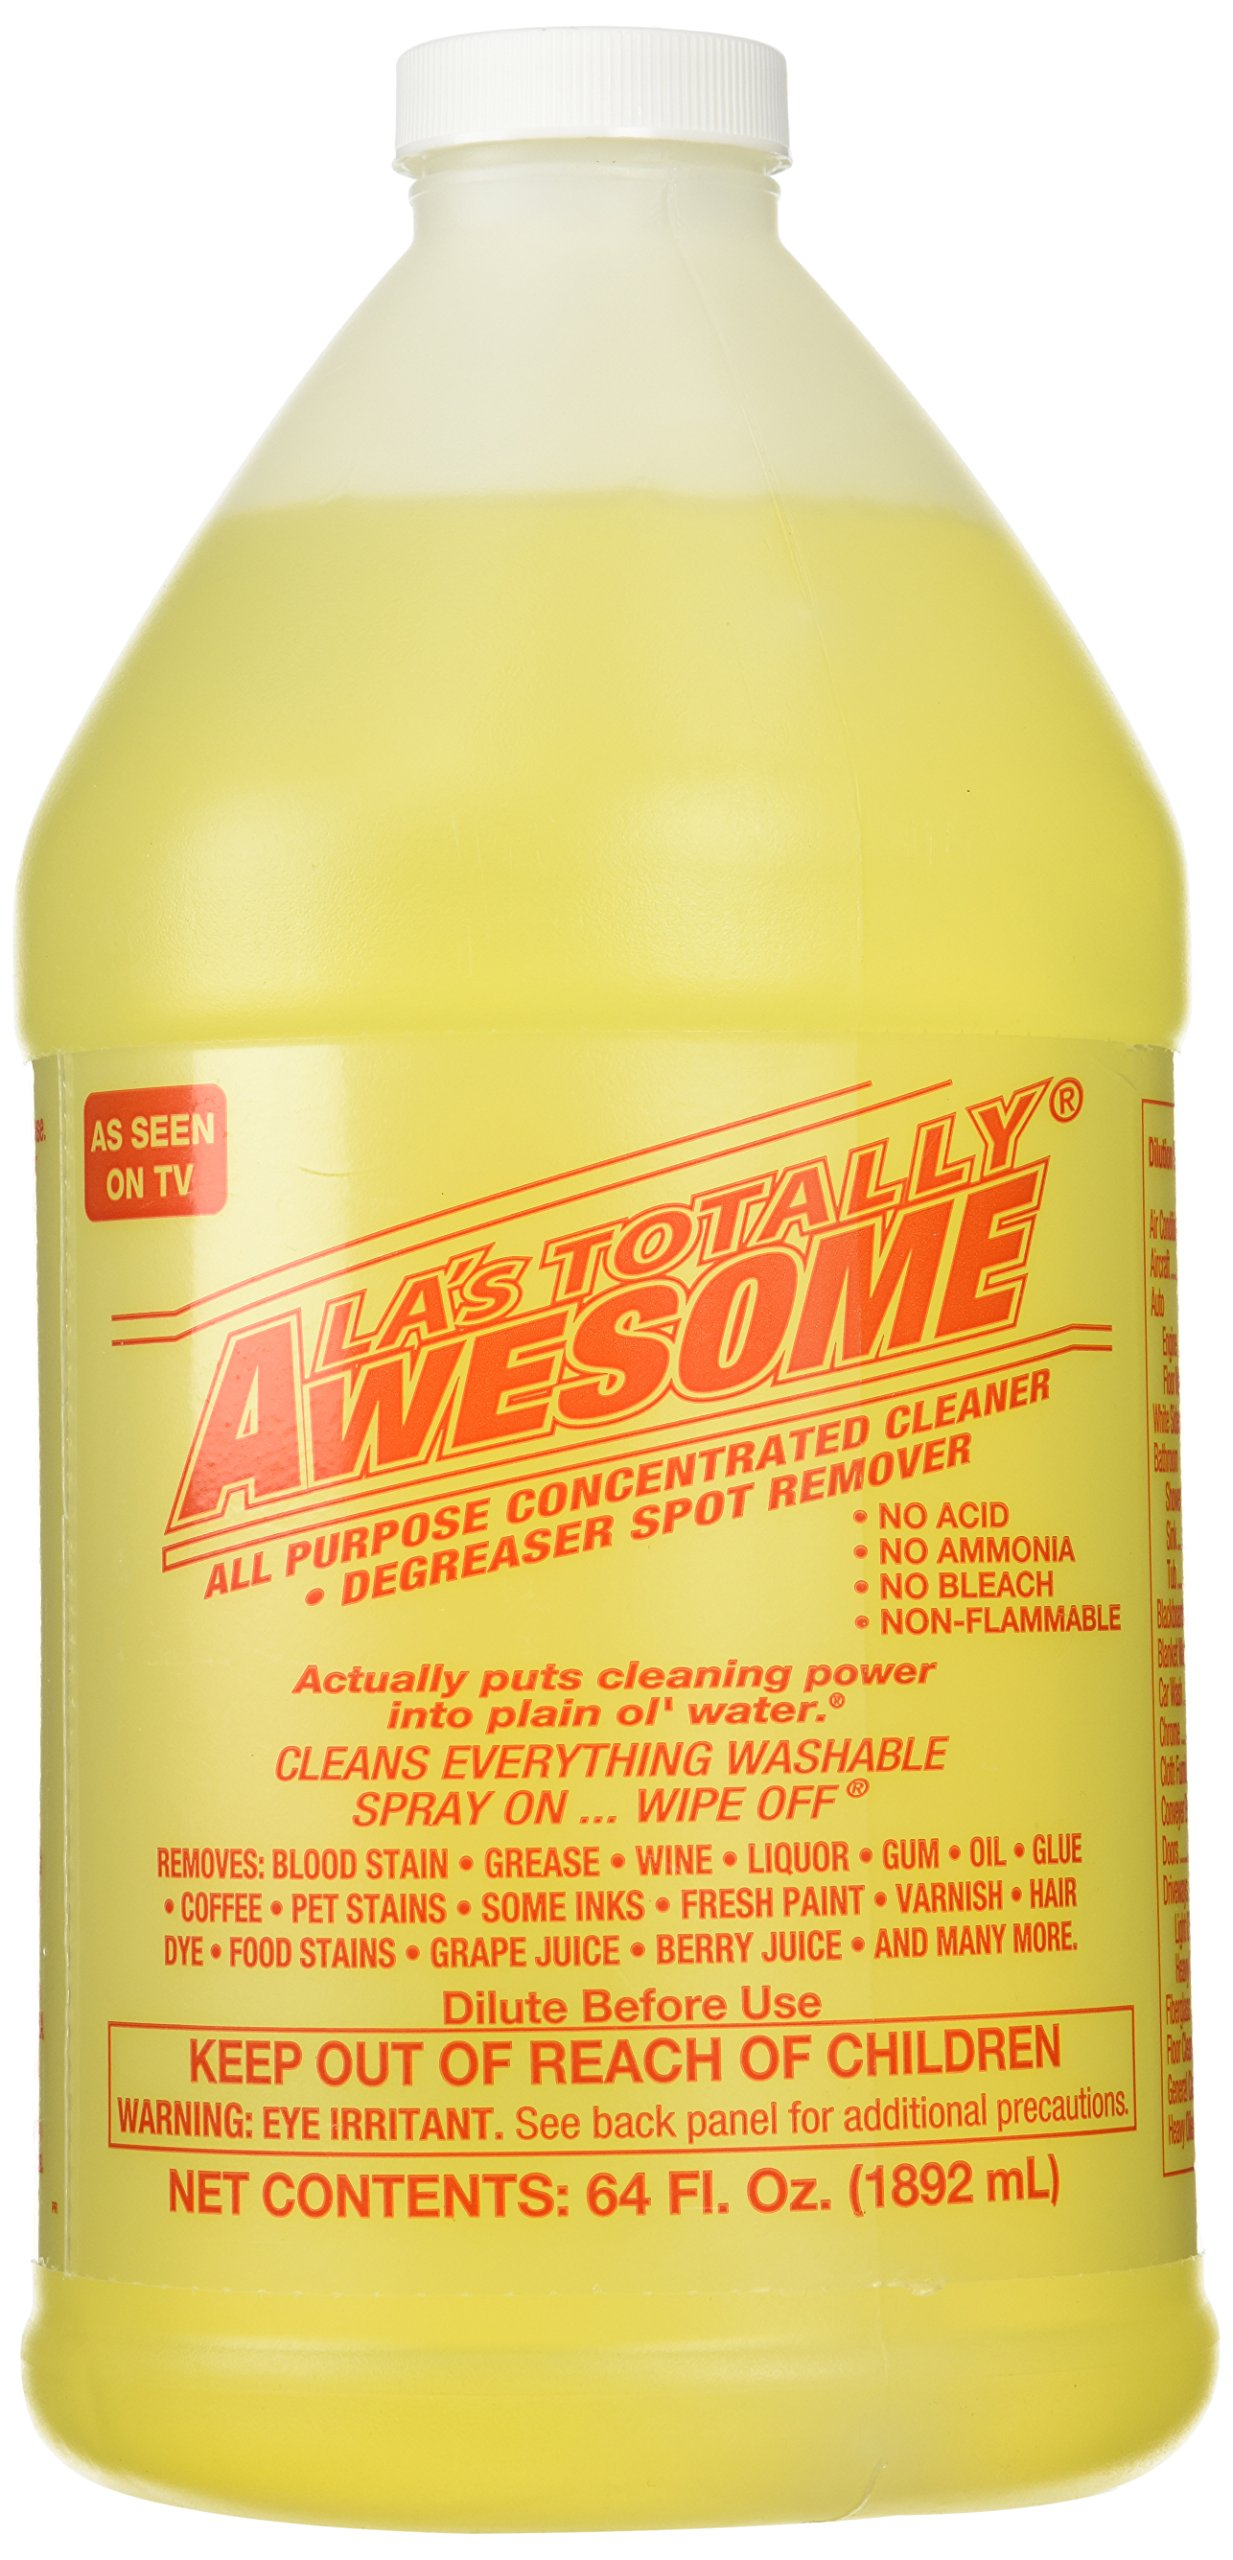 La's Totally Awesome All Purpose Cleaner, 64 oz